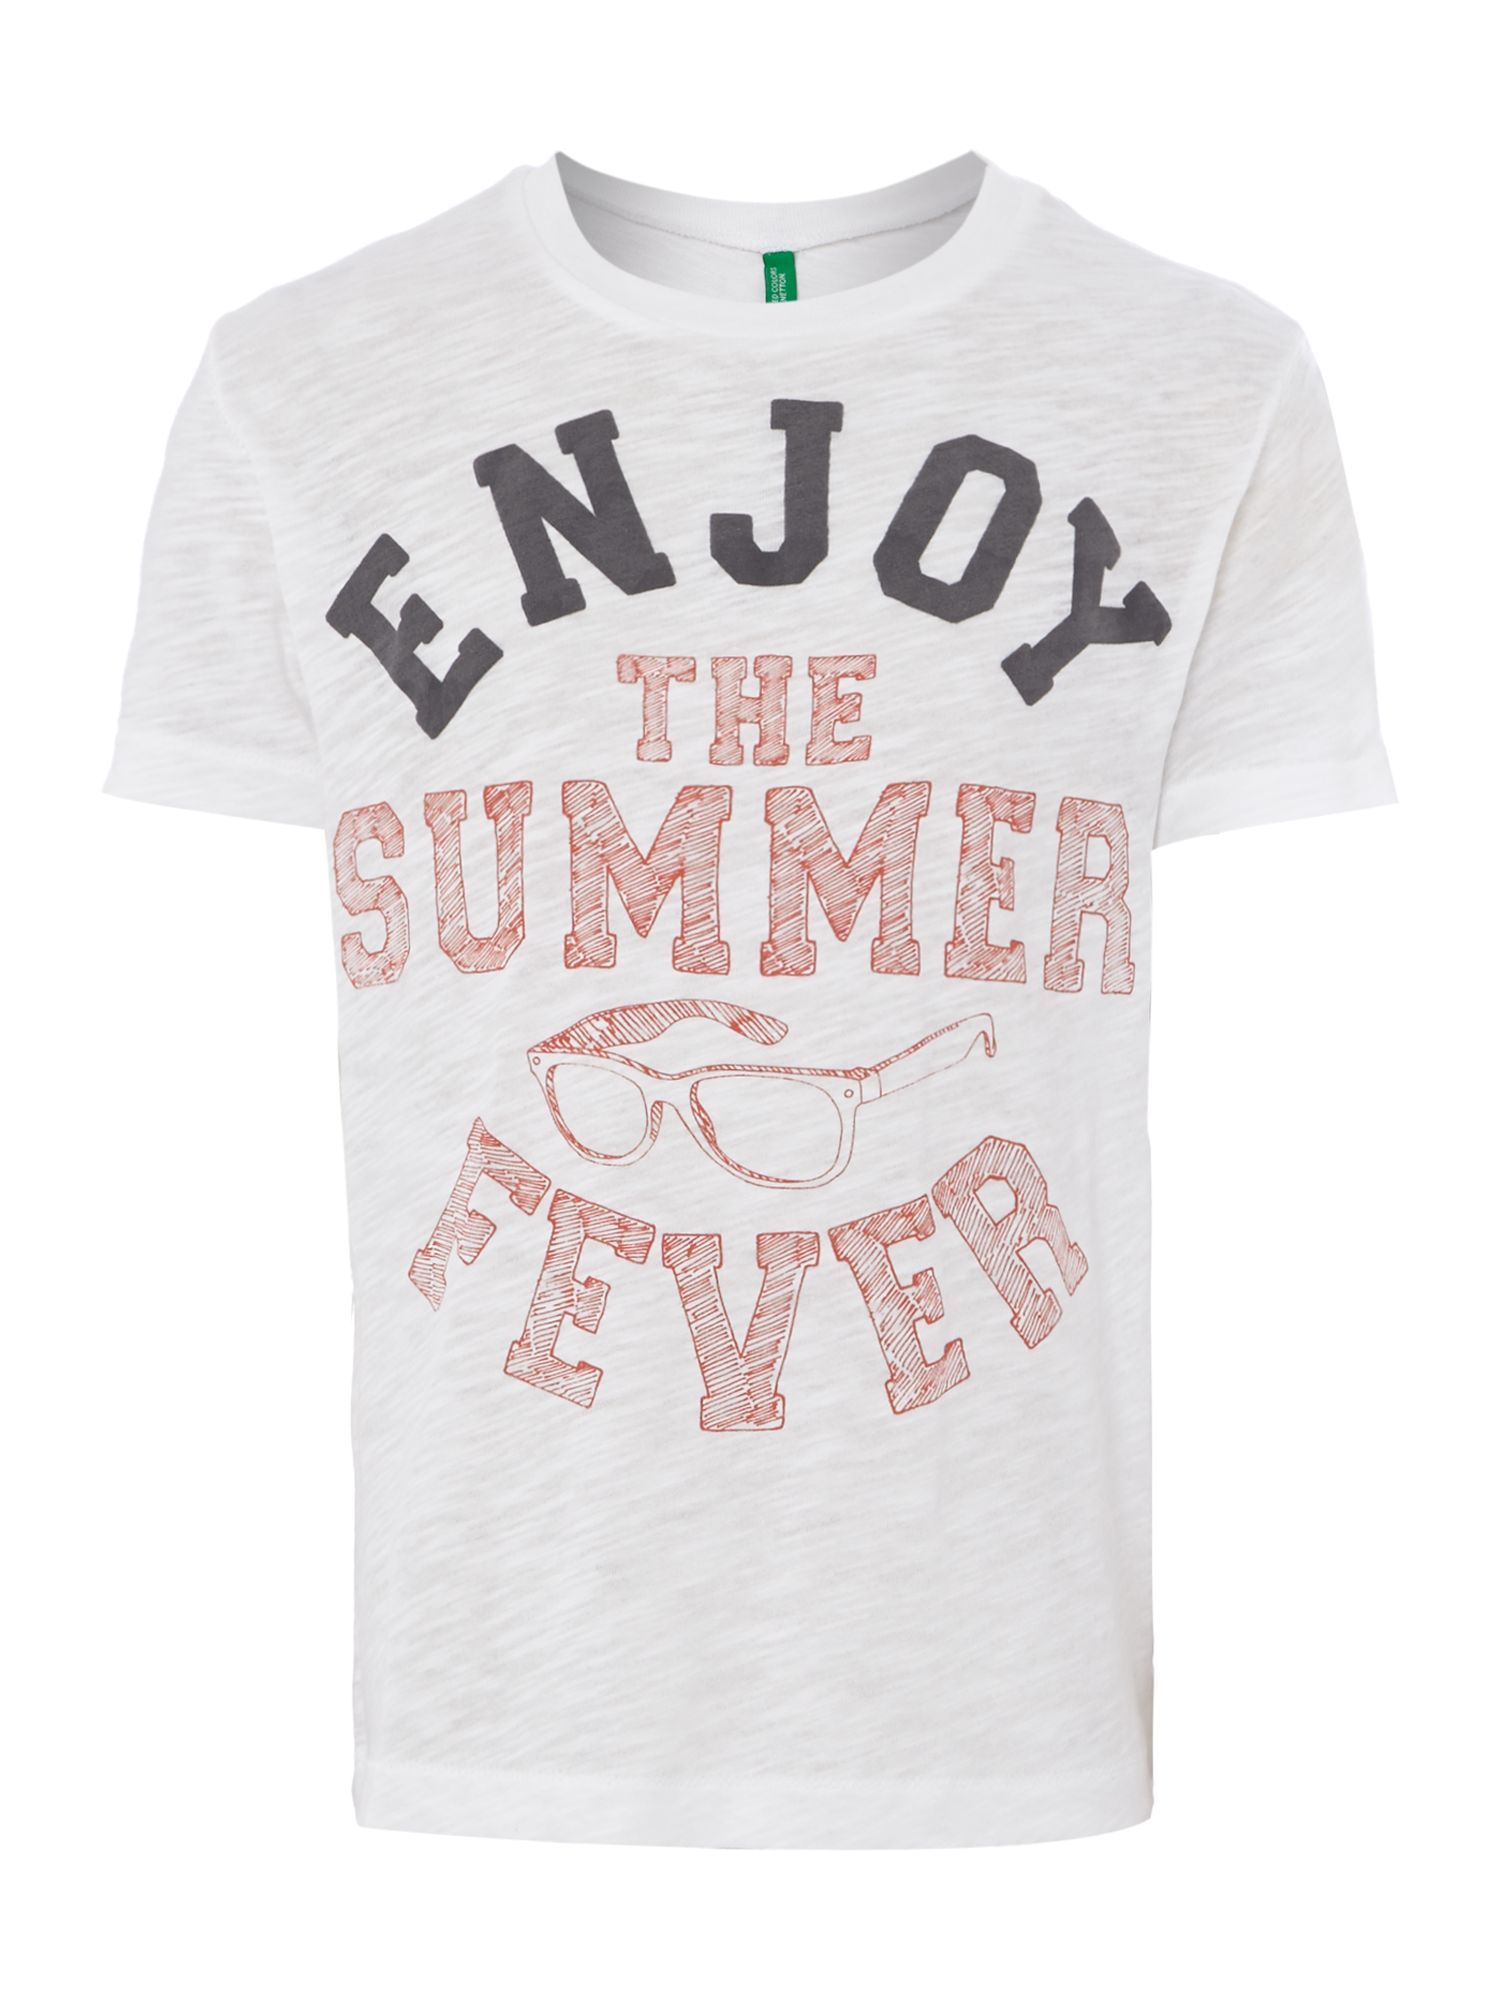 Boys summer fever t-shirt